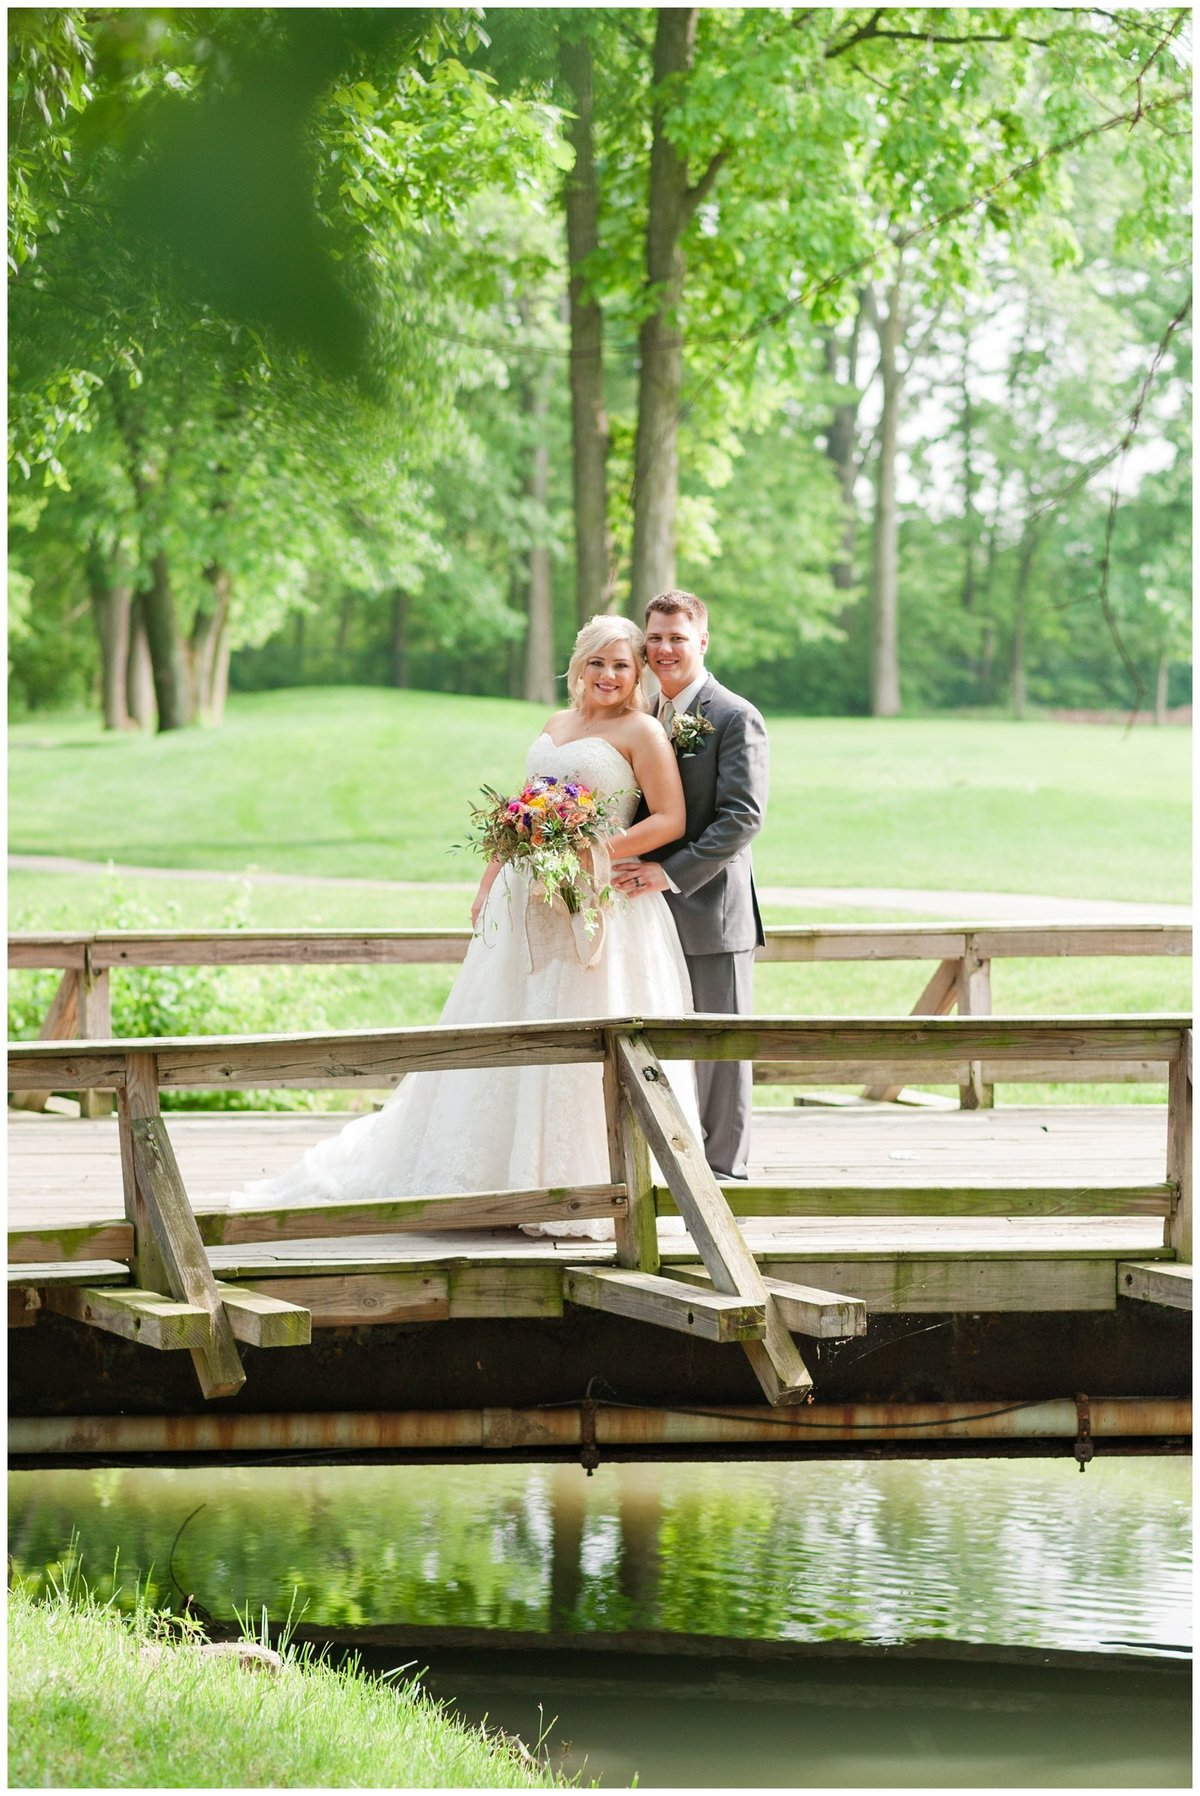 Heritage golf and country club wedding hilliard ohio wedding photos_0061